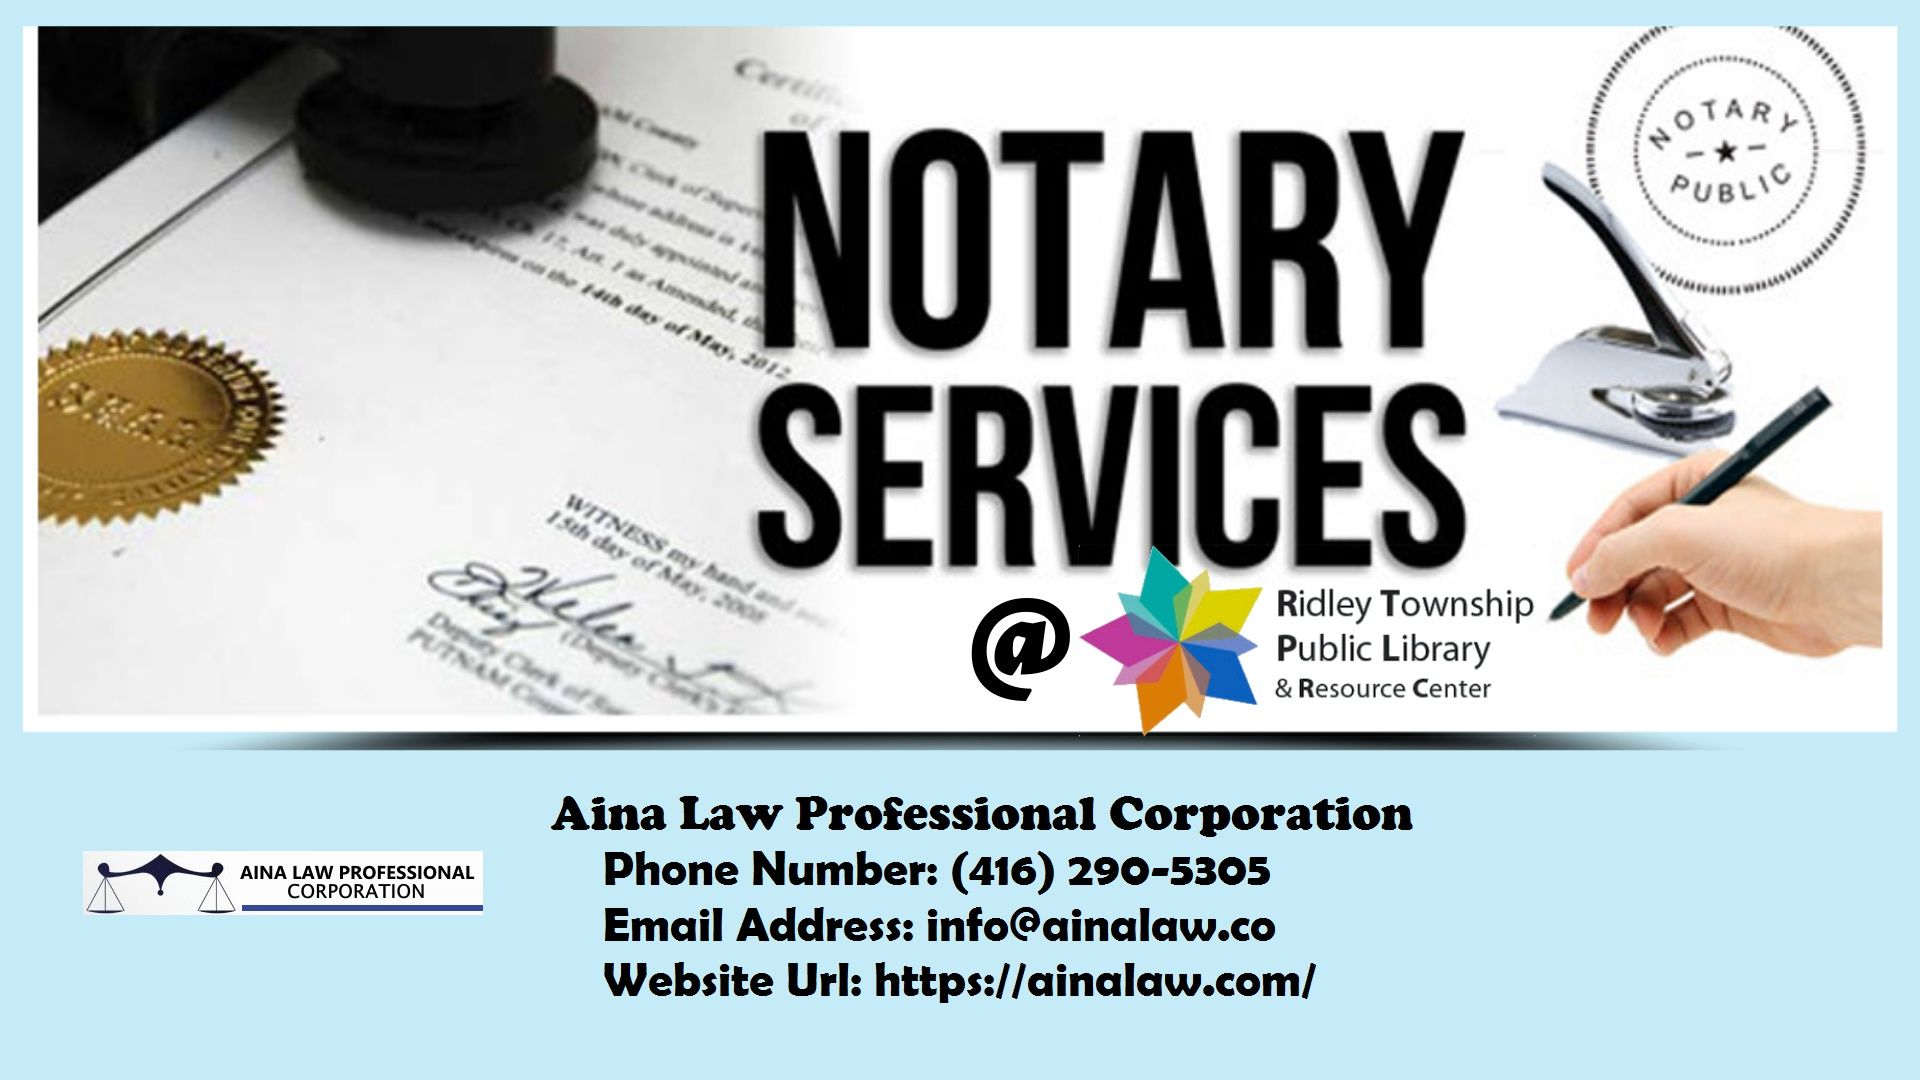 Aina law professsional corporation is committed to